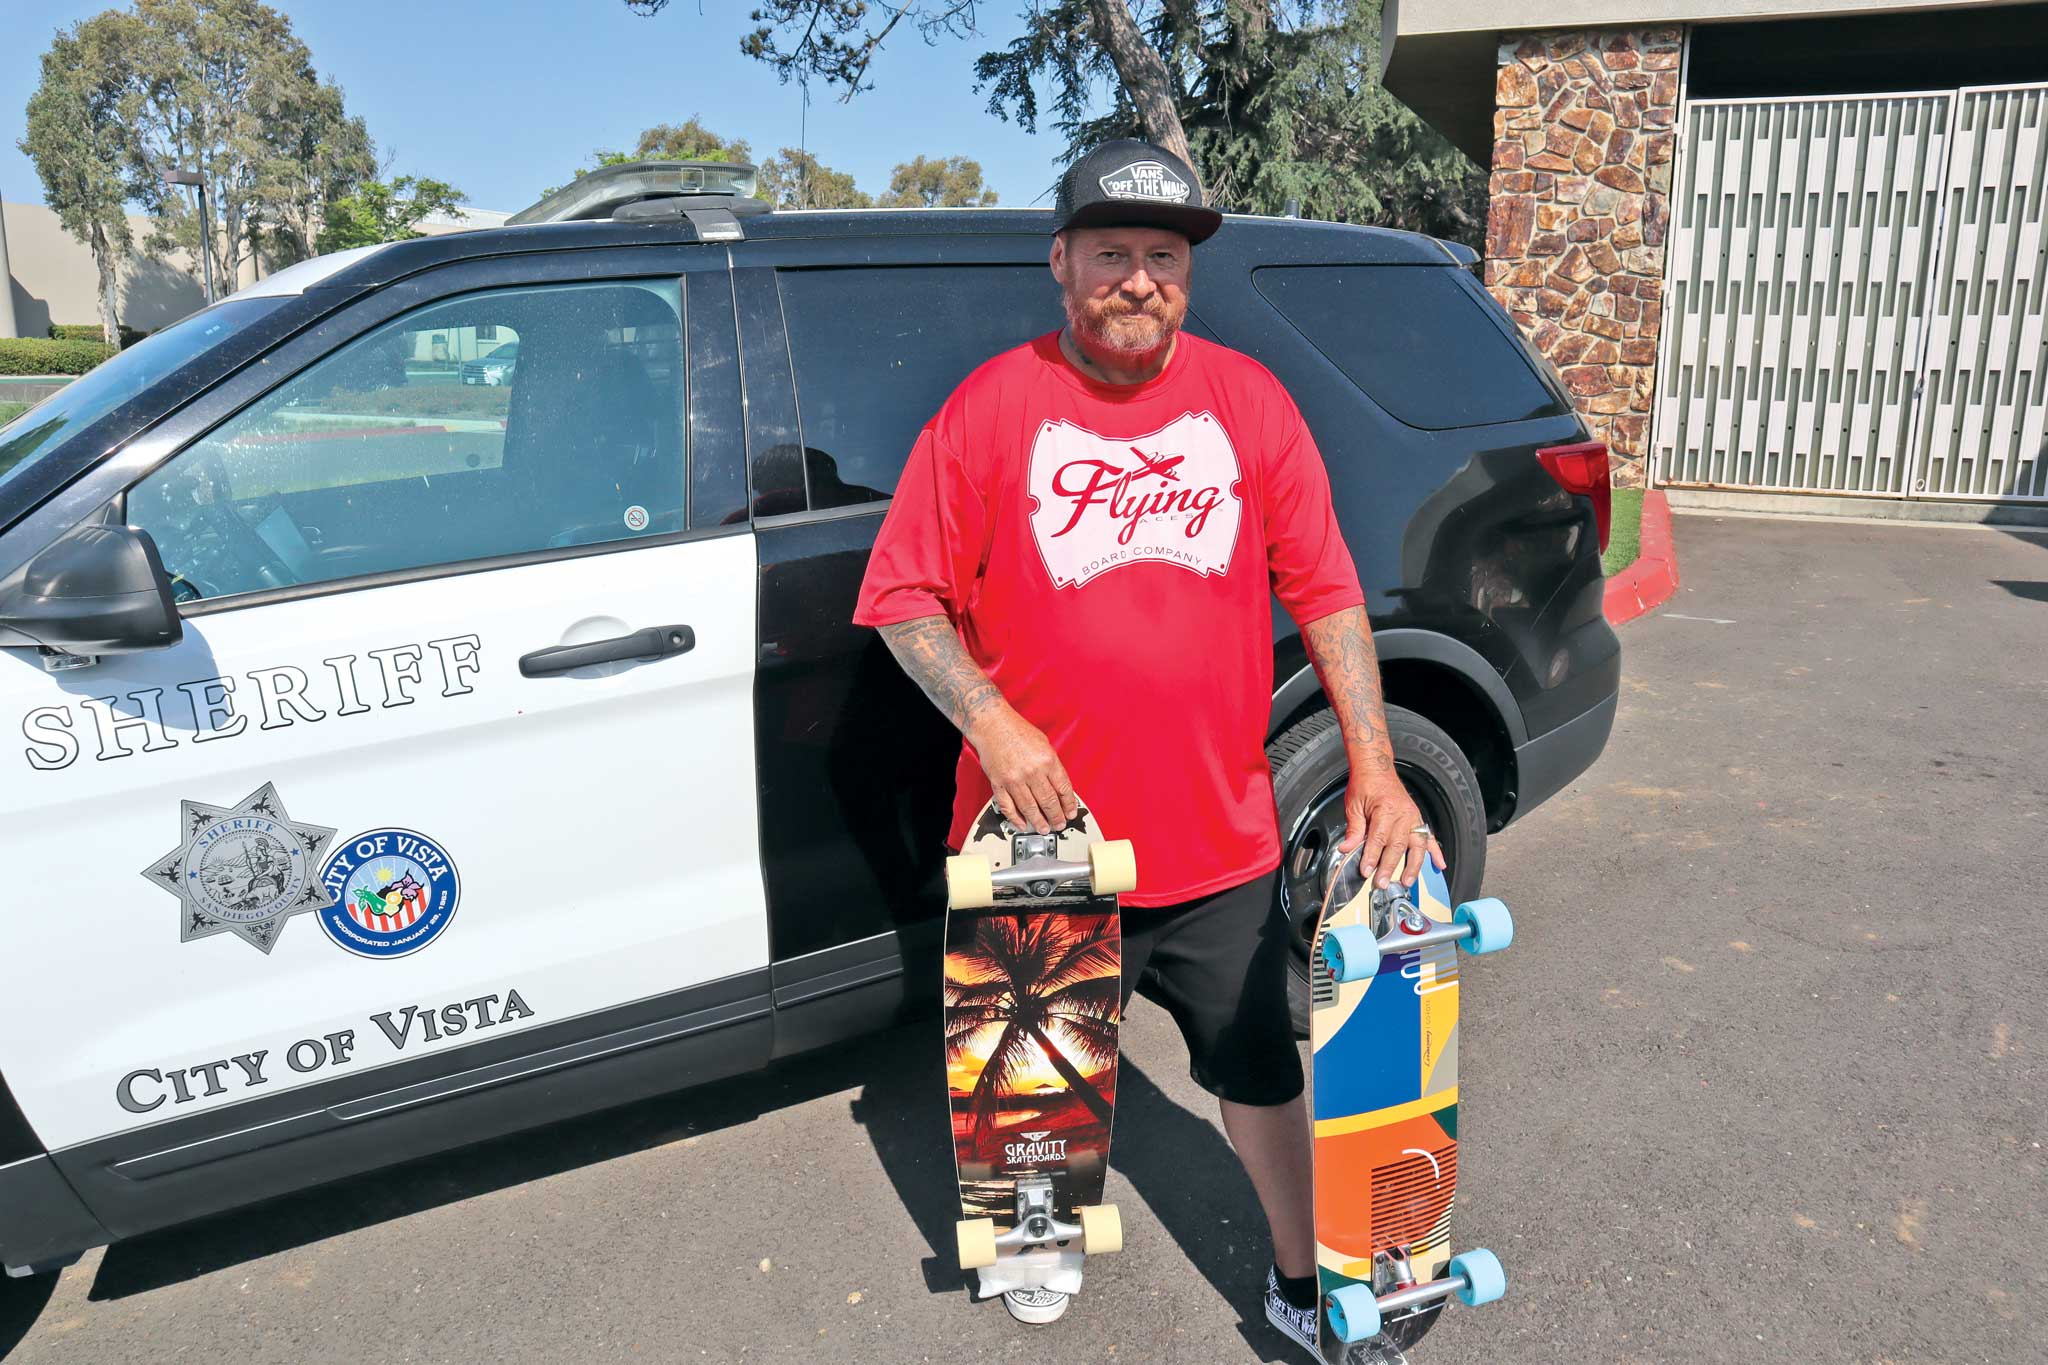 Dennis Martinez with skateboards and Vista Sheriff vehicle CREDIT Chris Ahrens.